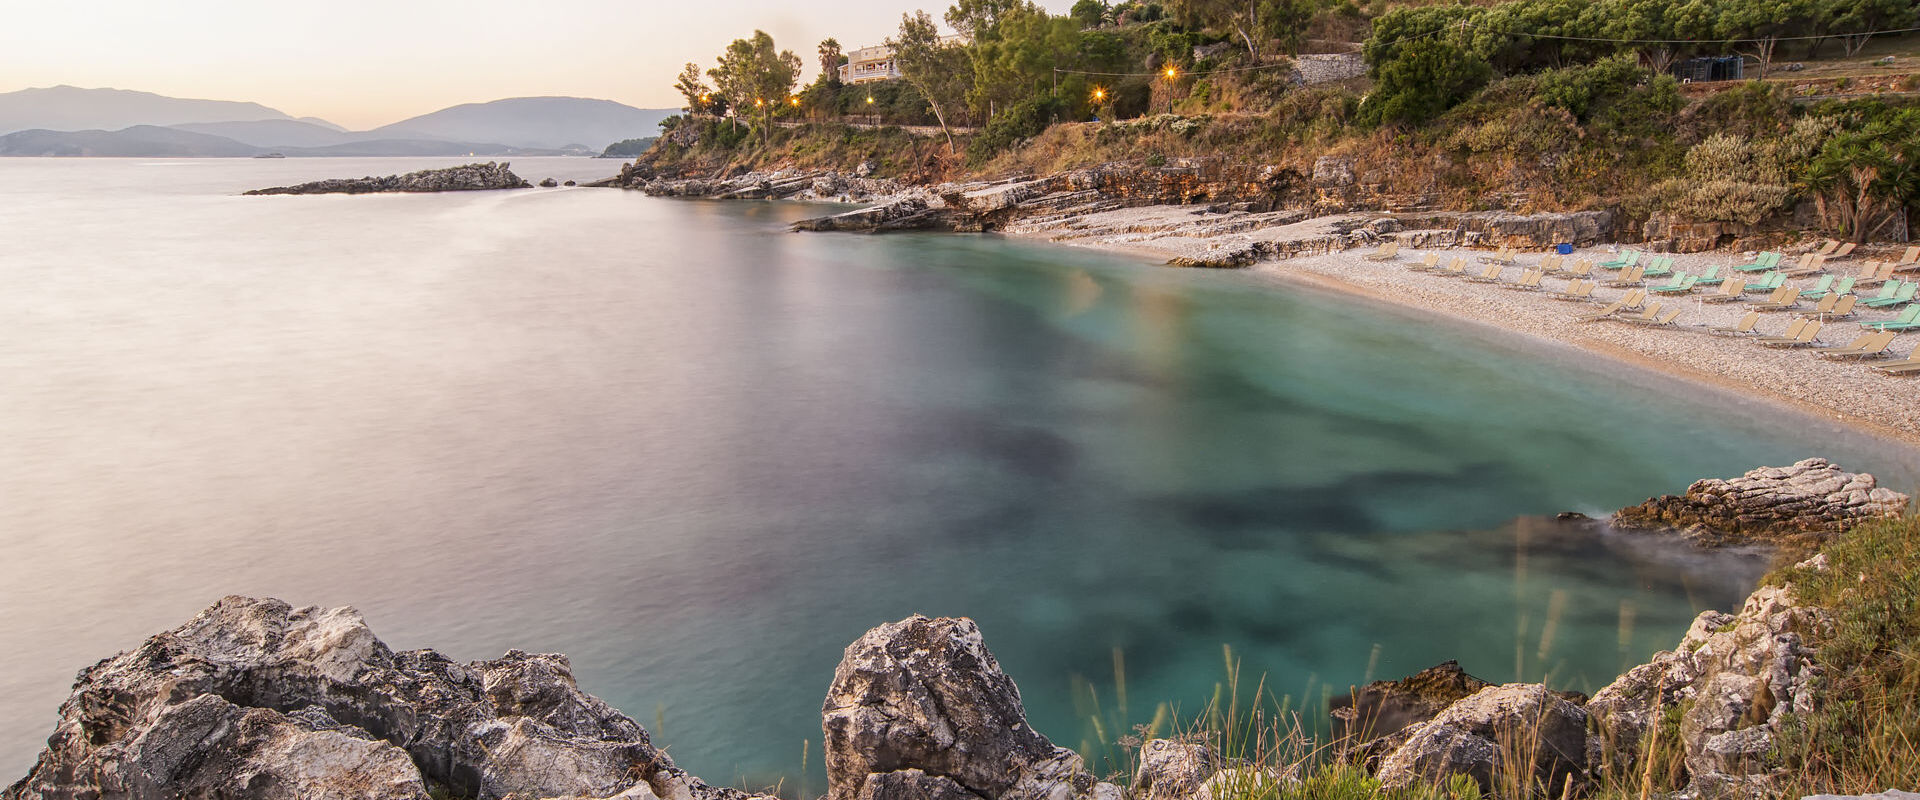 Beach at dawn, Corfu